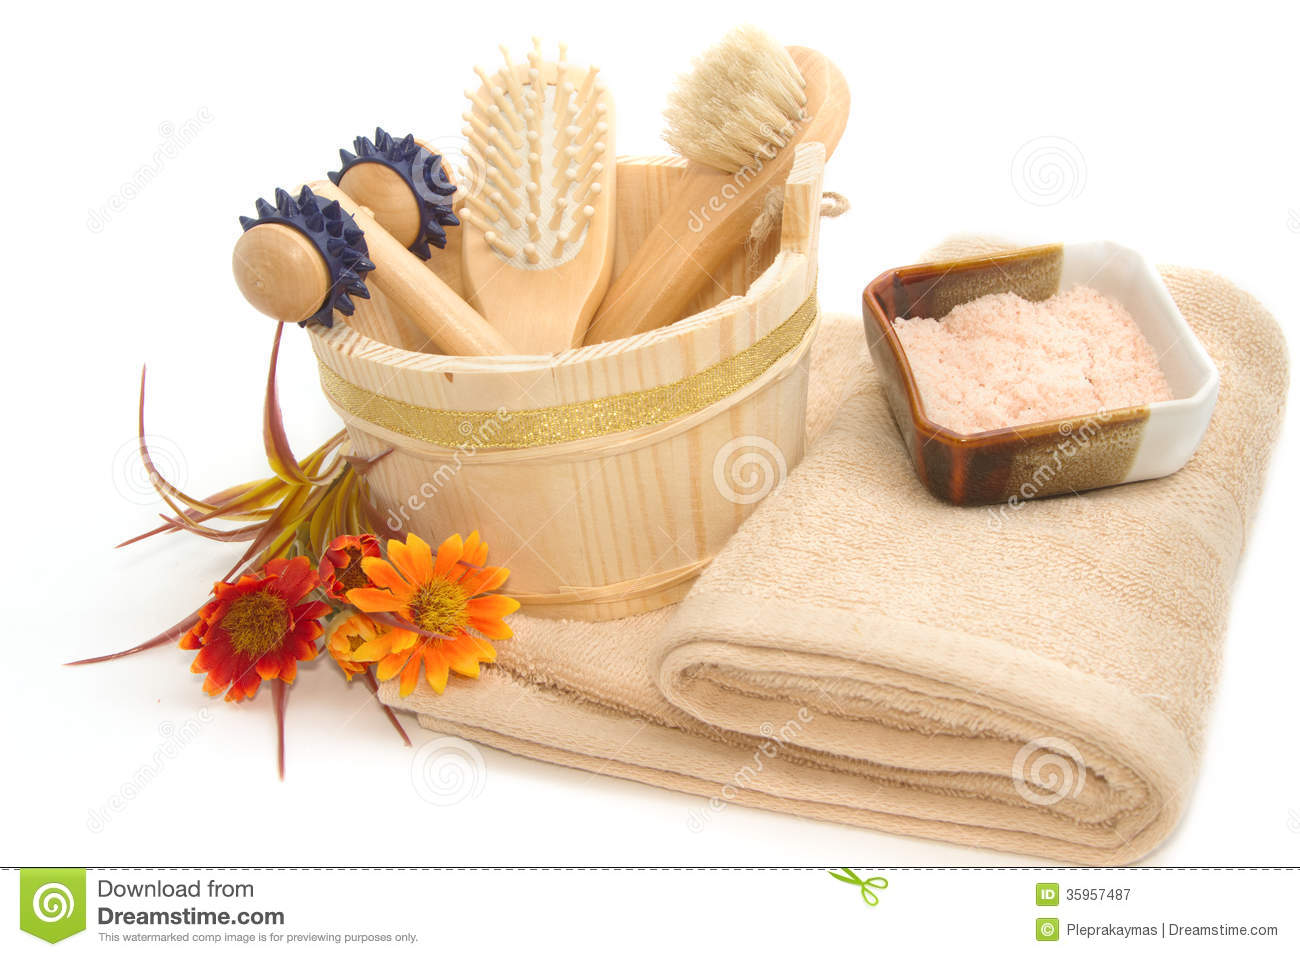 Wooden Bucket With Spa Accessories With Himalayan Salt